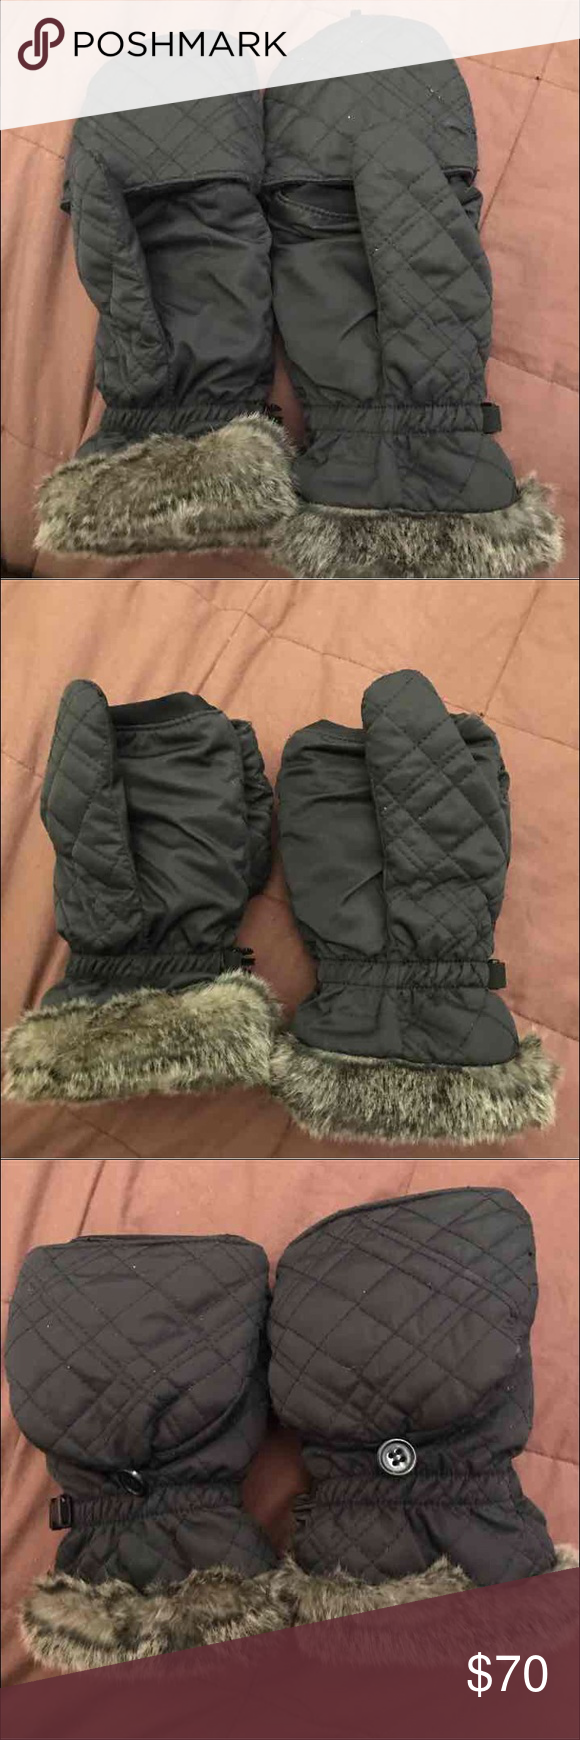 Eddie Bauer Down Convertible Mittens NEW without Tags. Convert Mittens to fingerless gloves. Eddie Bauer Accessories Gloves & Mittens